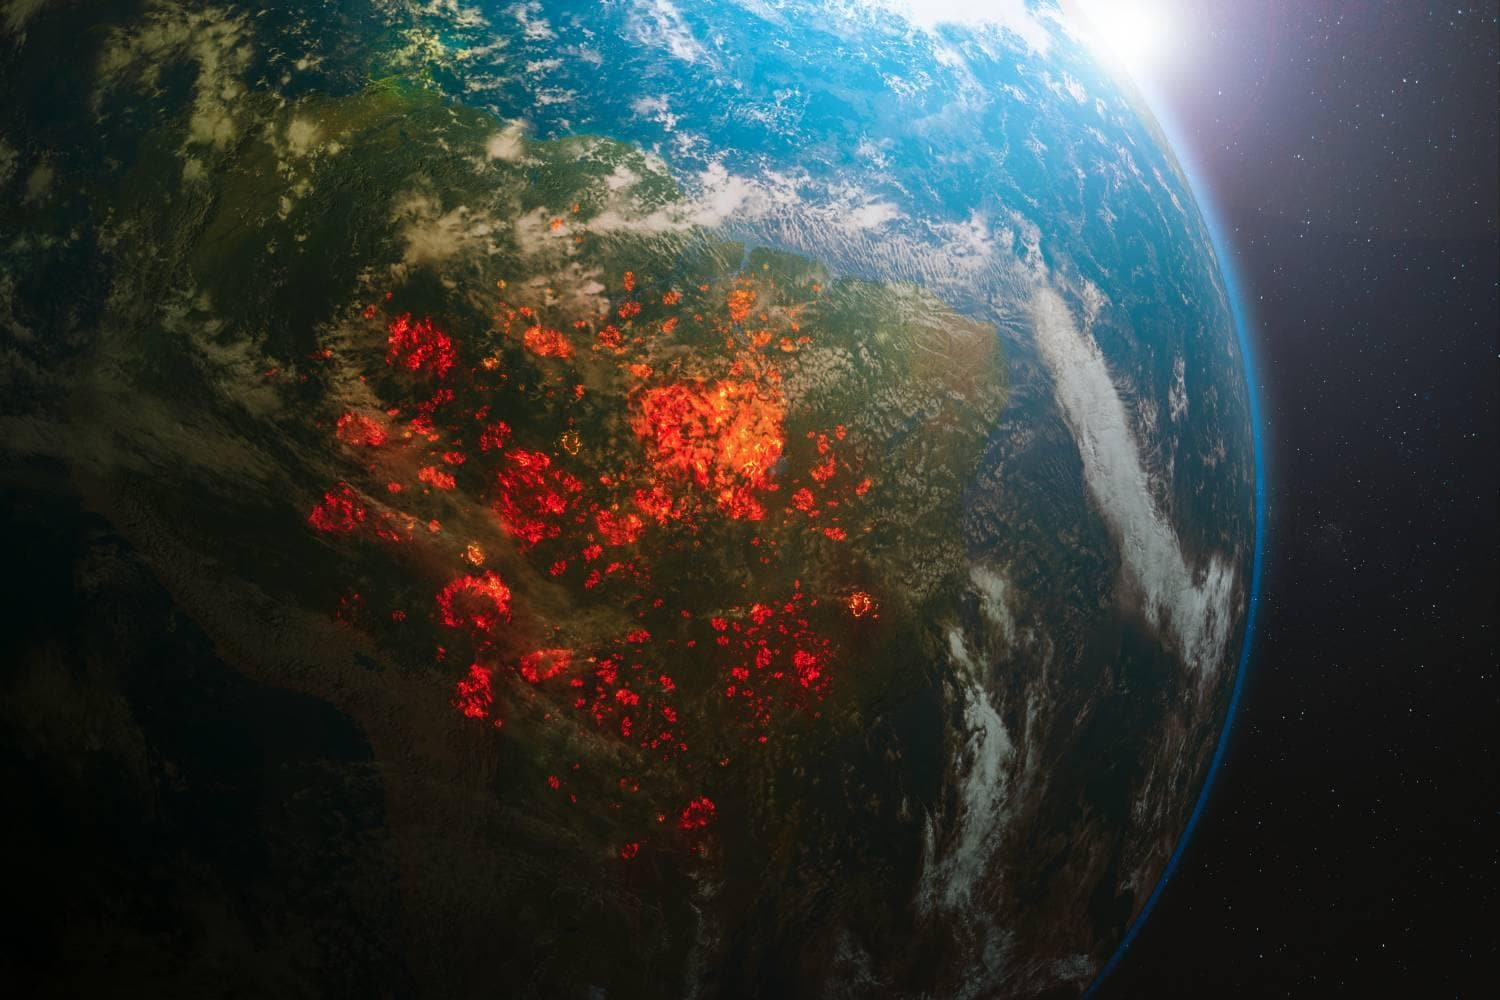 rainforest fires shown on earth from space